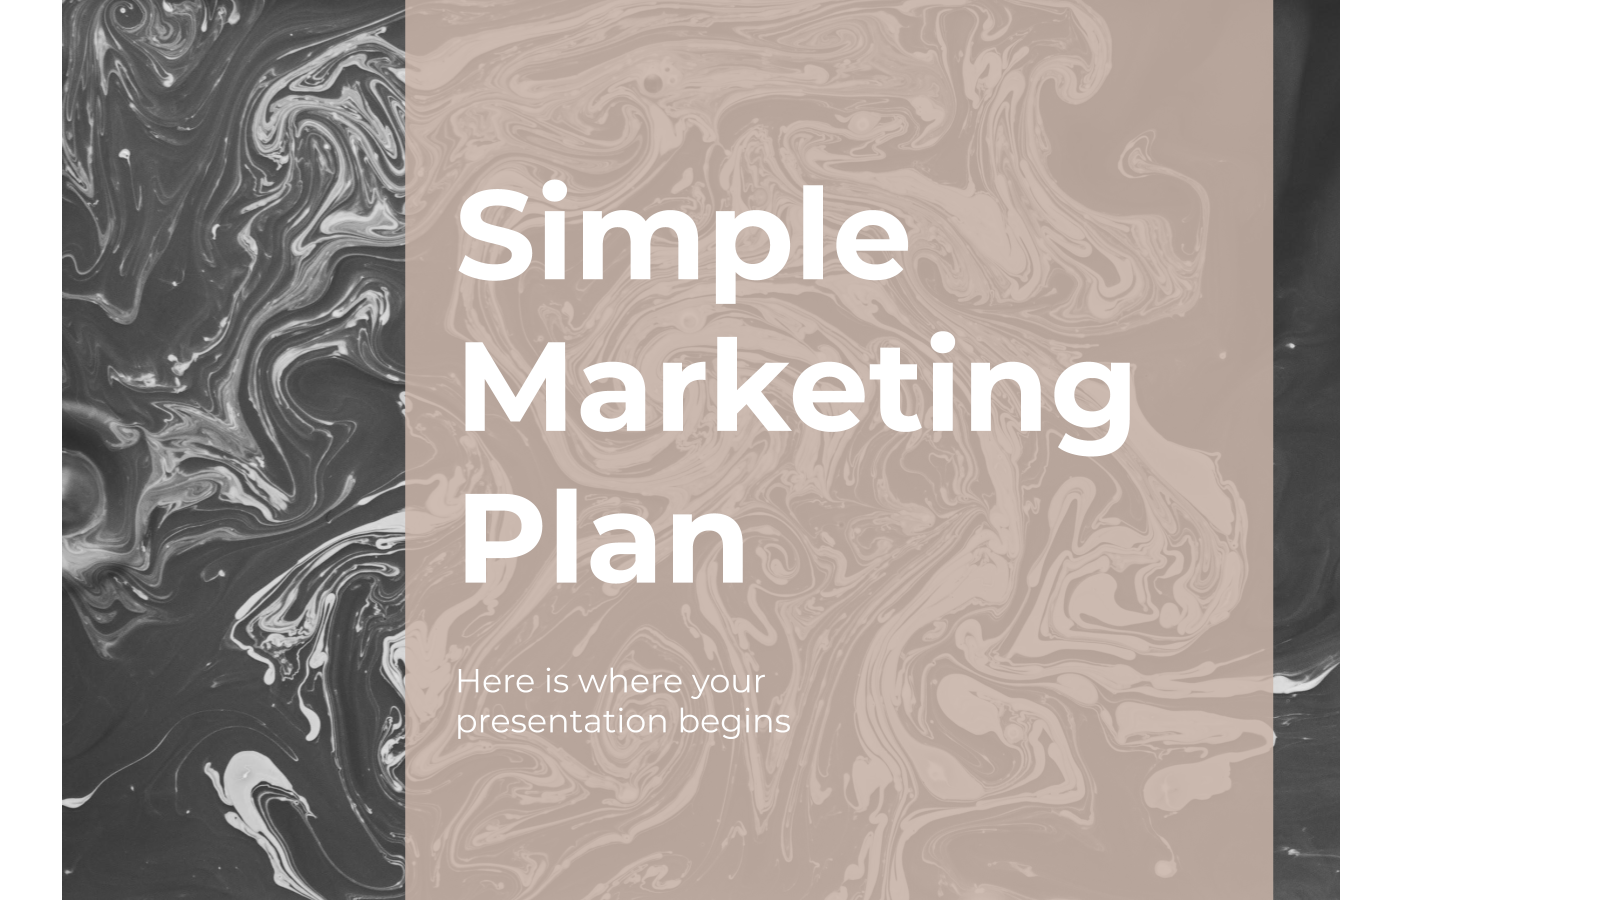 Simple Marketing Plan presentation template